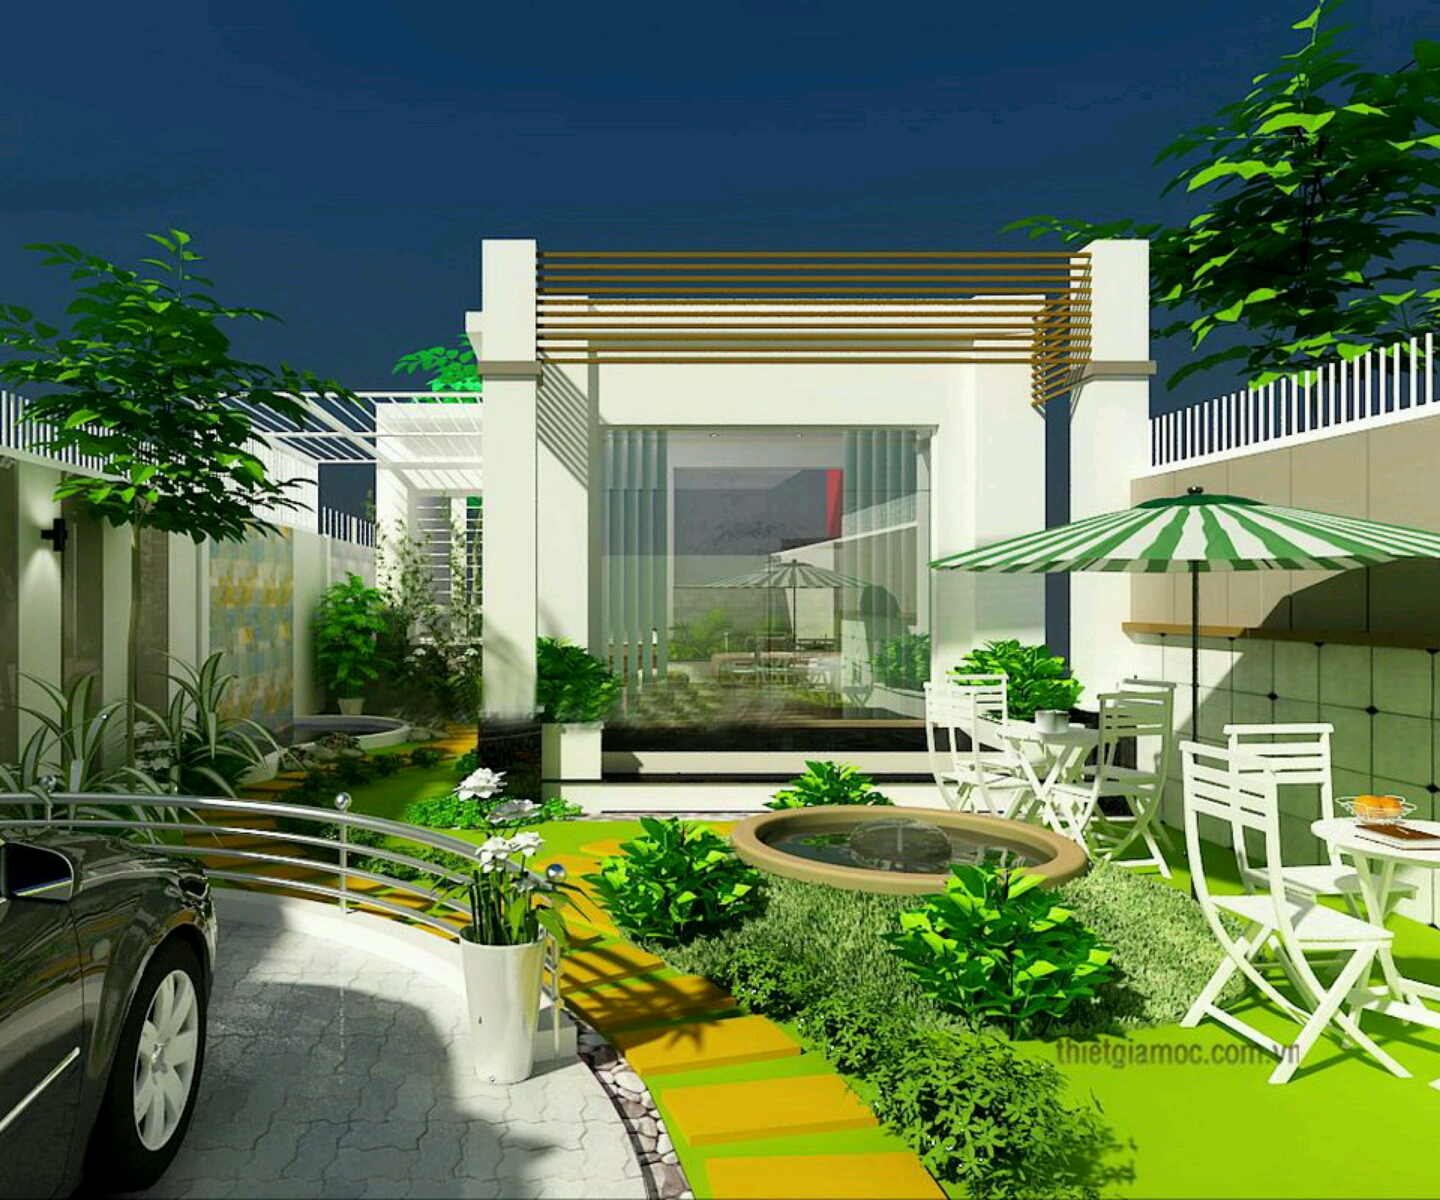 New home designs latest modern homes beautiful garden for Garden design for home